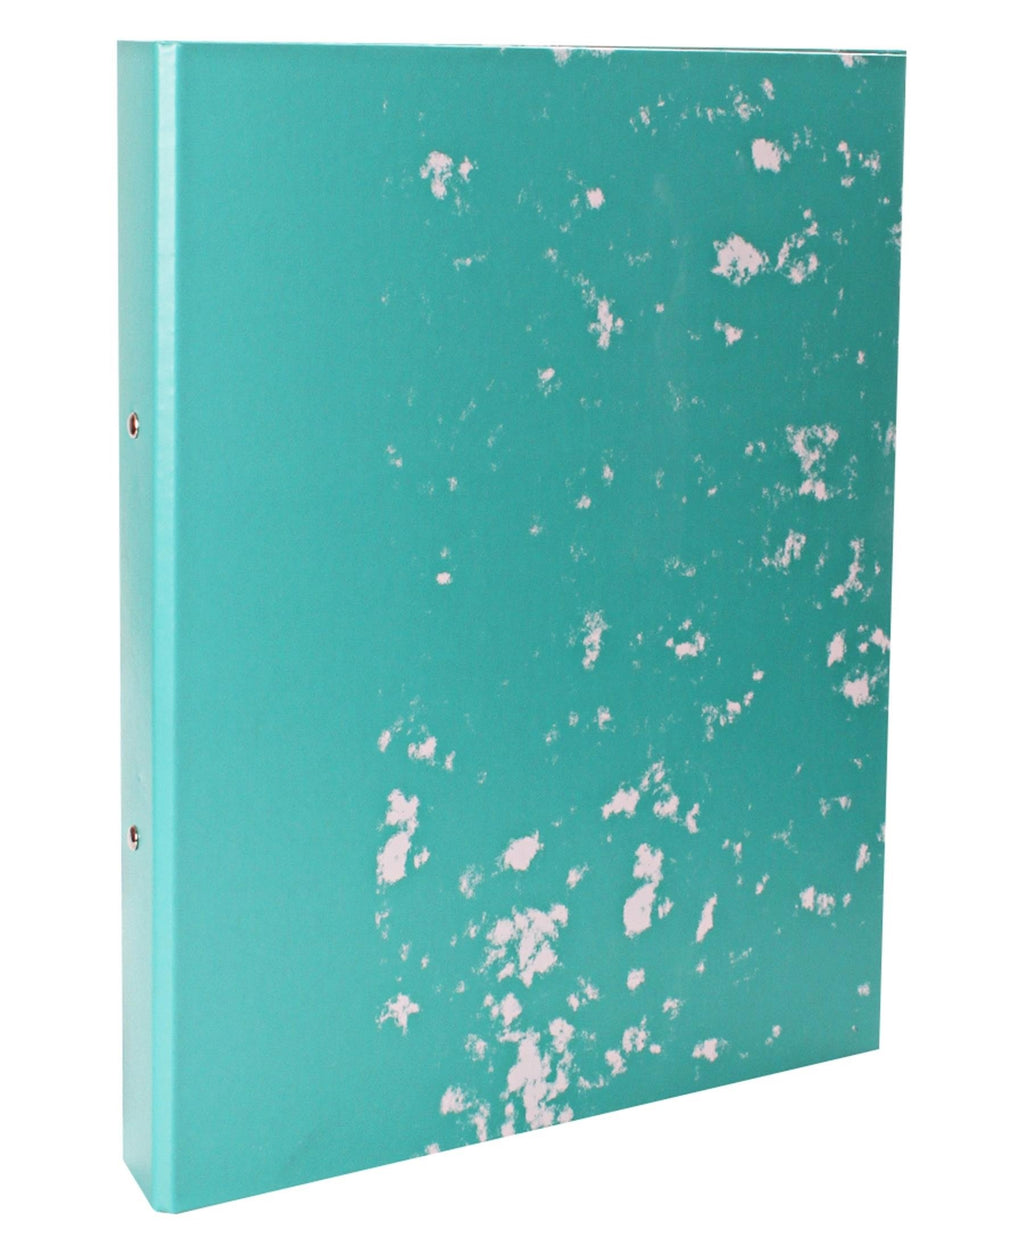 Marlin Ring Binder File - Blue